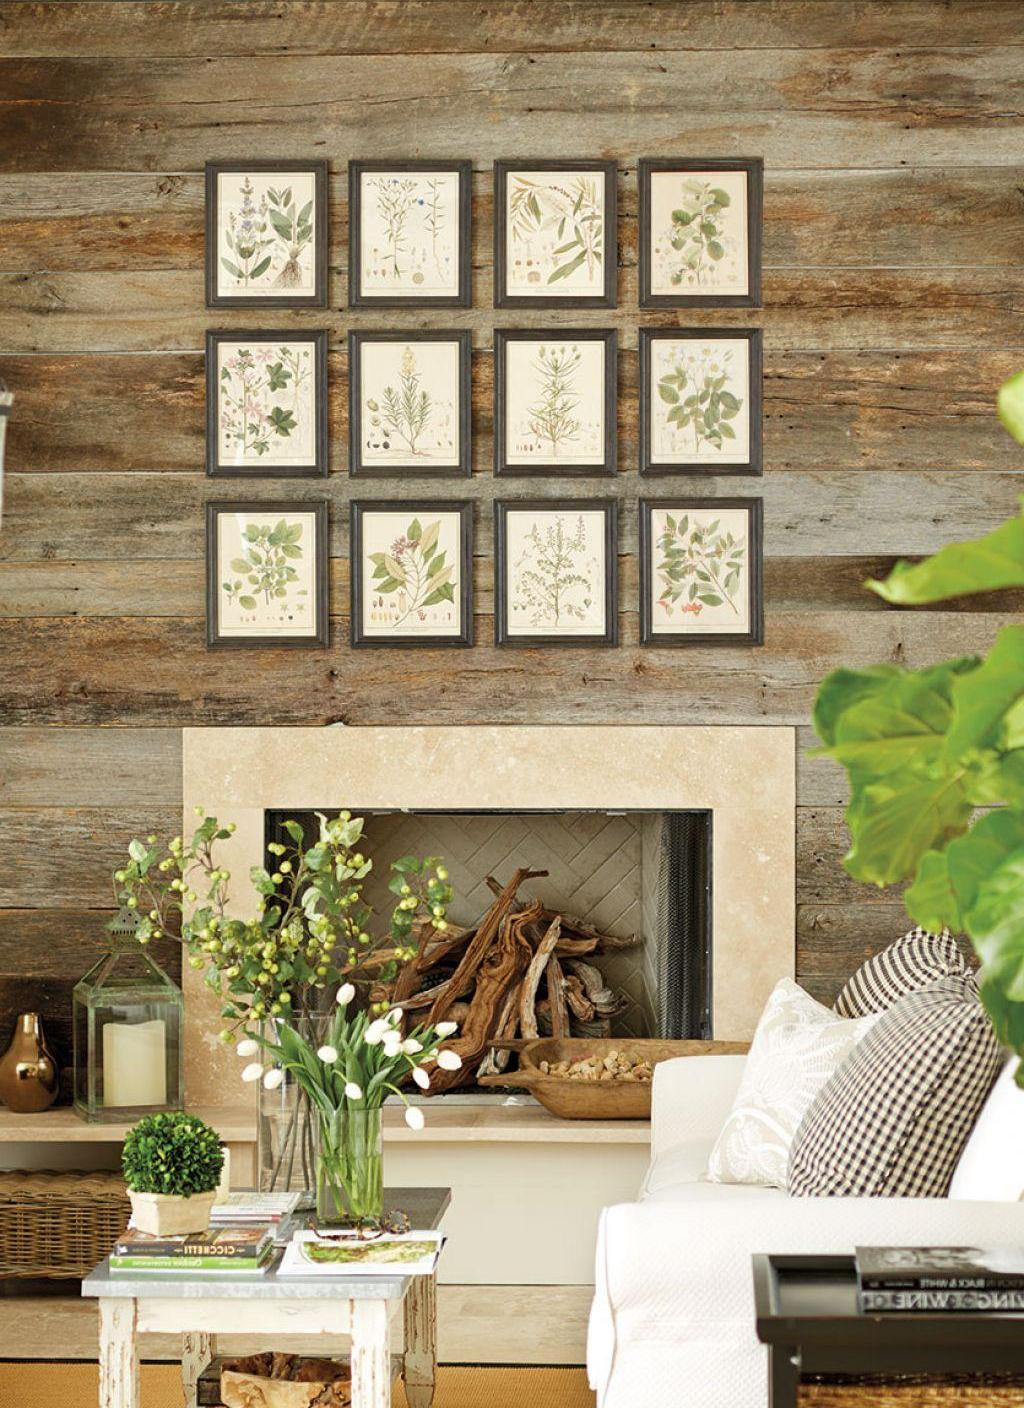 Hanging Art Over The Fireplace